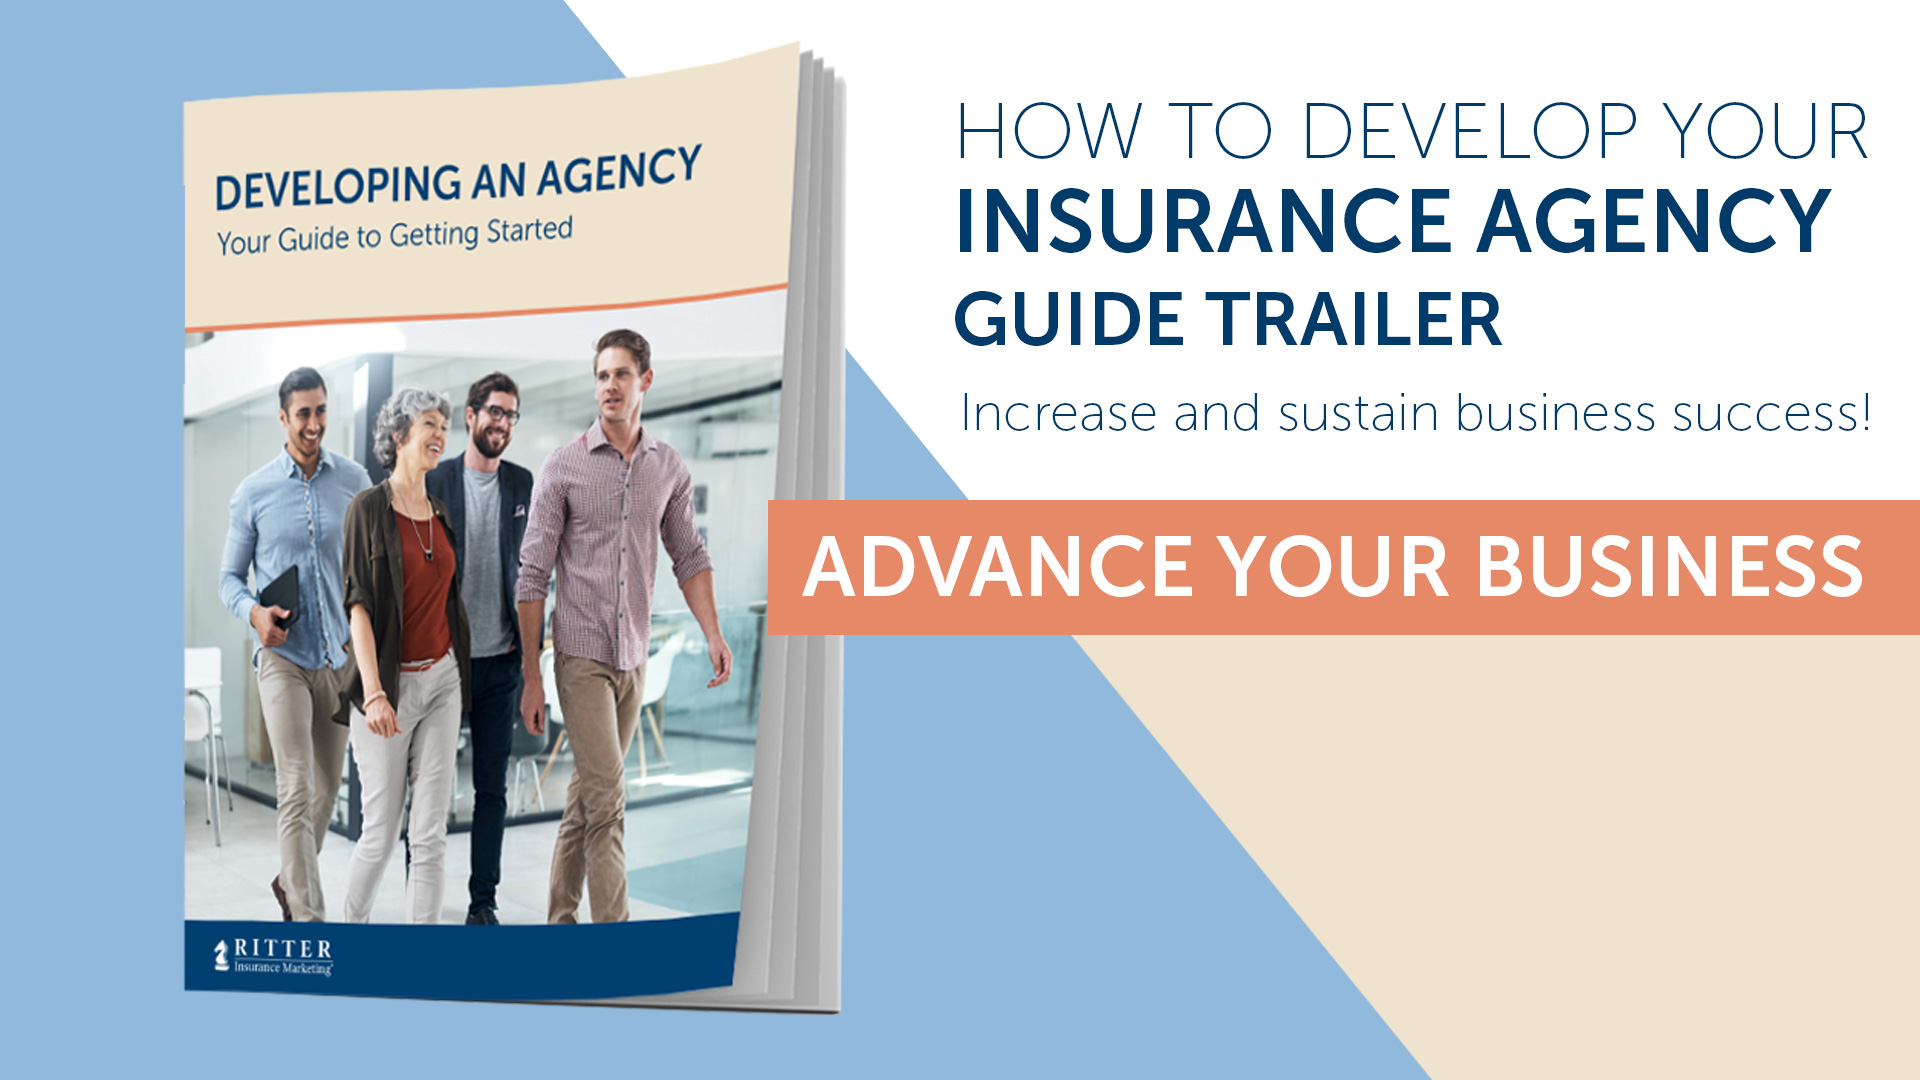 The Complete Guide on Developing an Agency